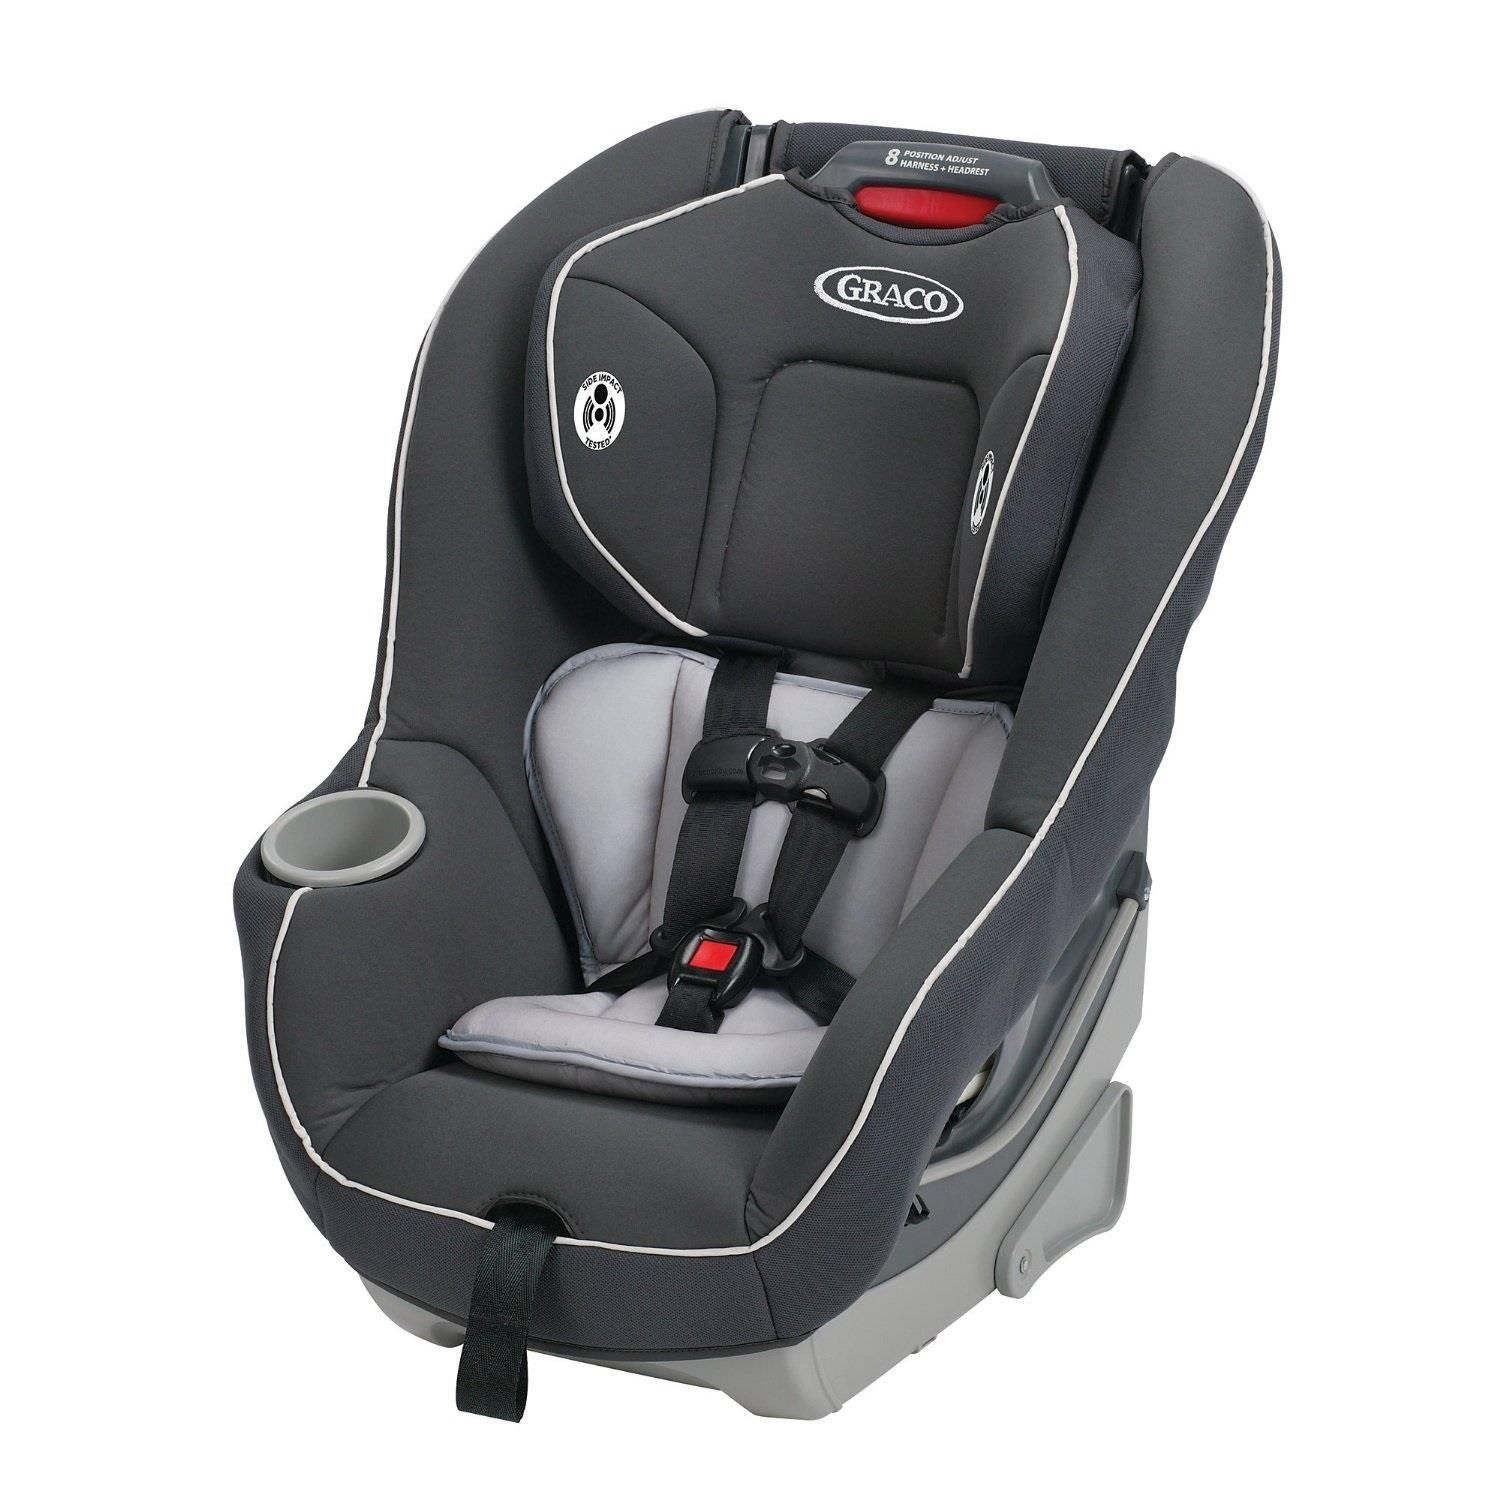 Free Shipping. Buy Graco Contender 65 Convertible Car Seat